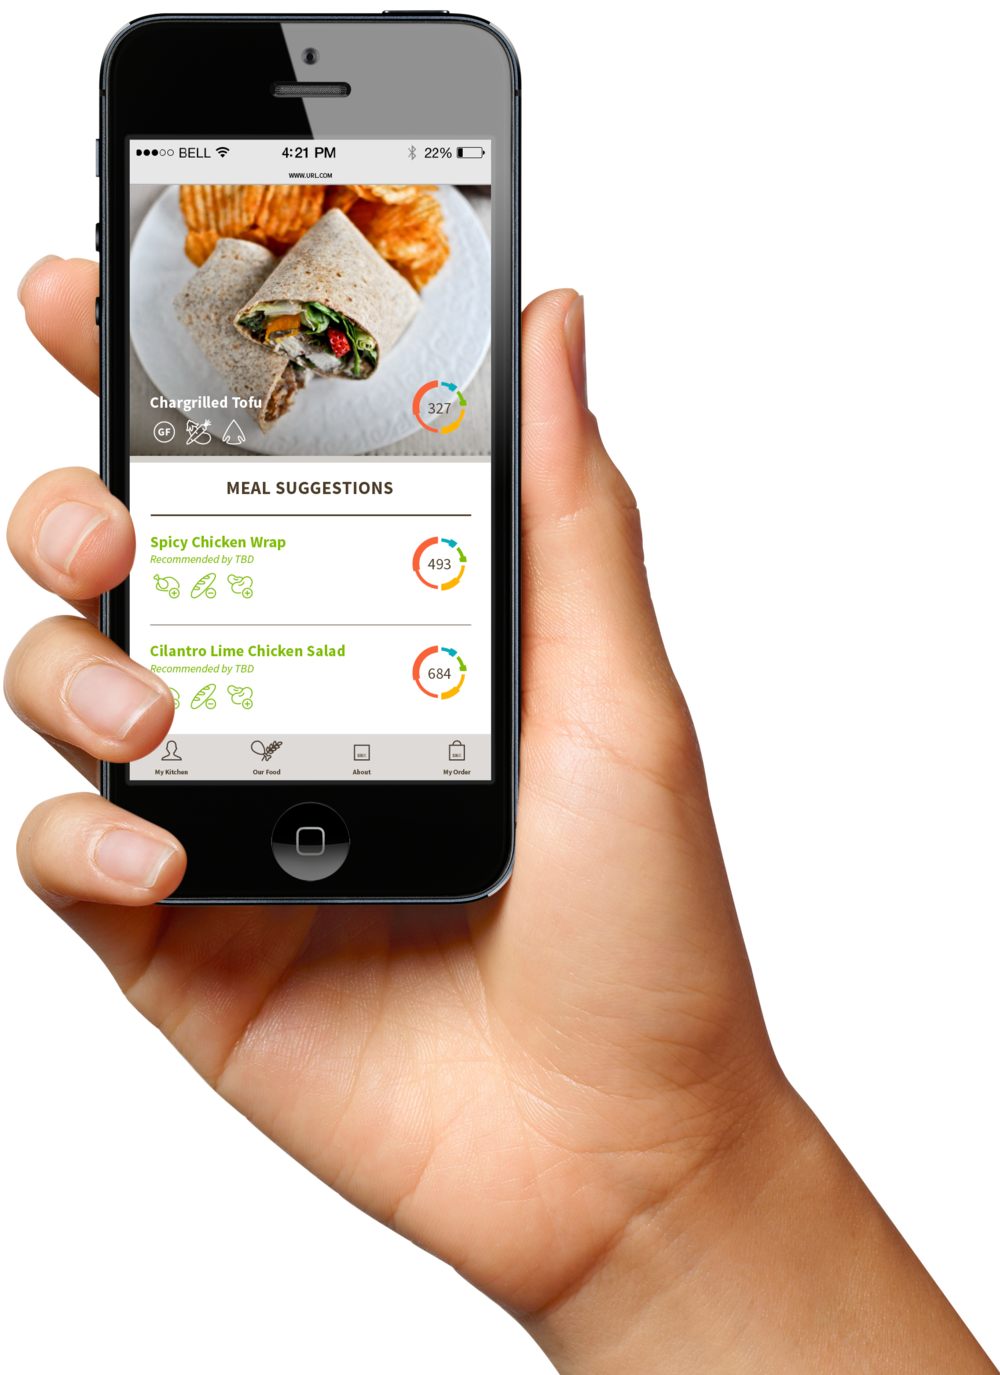 We collaborated with a visionary entrepreneur to develop a new app-driven restaurant concept that strives to help people truly eat more healthily and better match specific dietary needs in the quick-serve context.